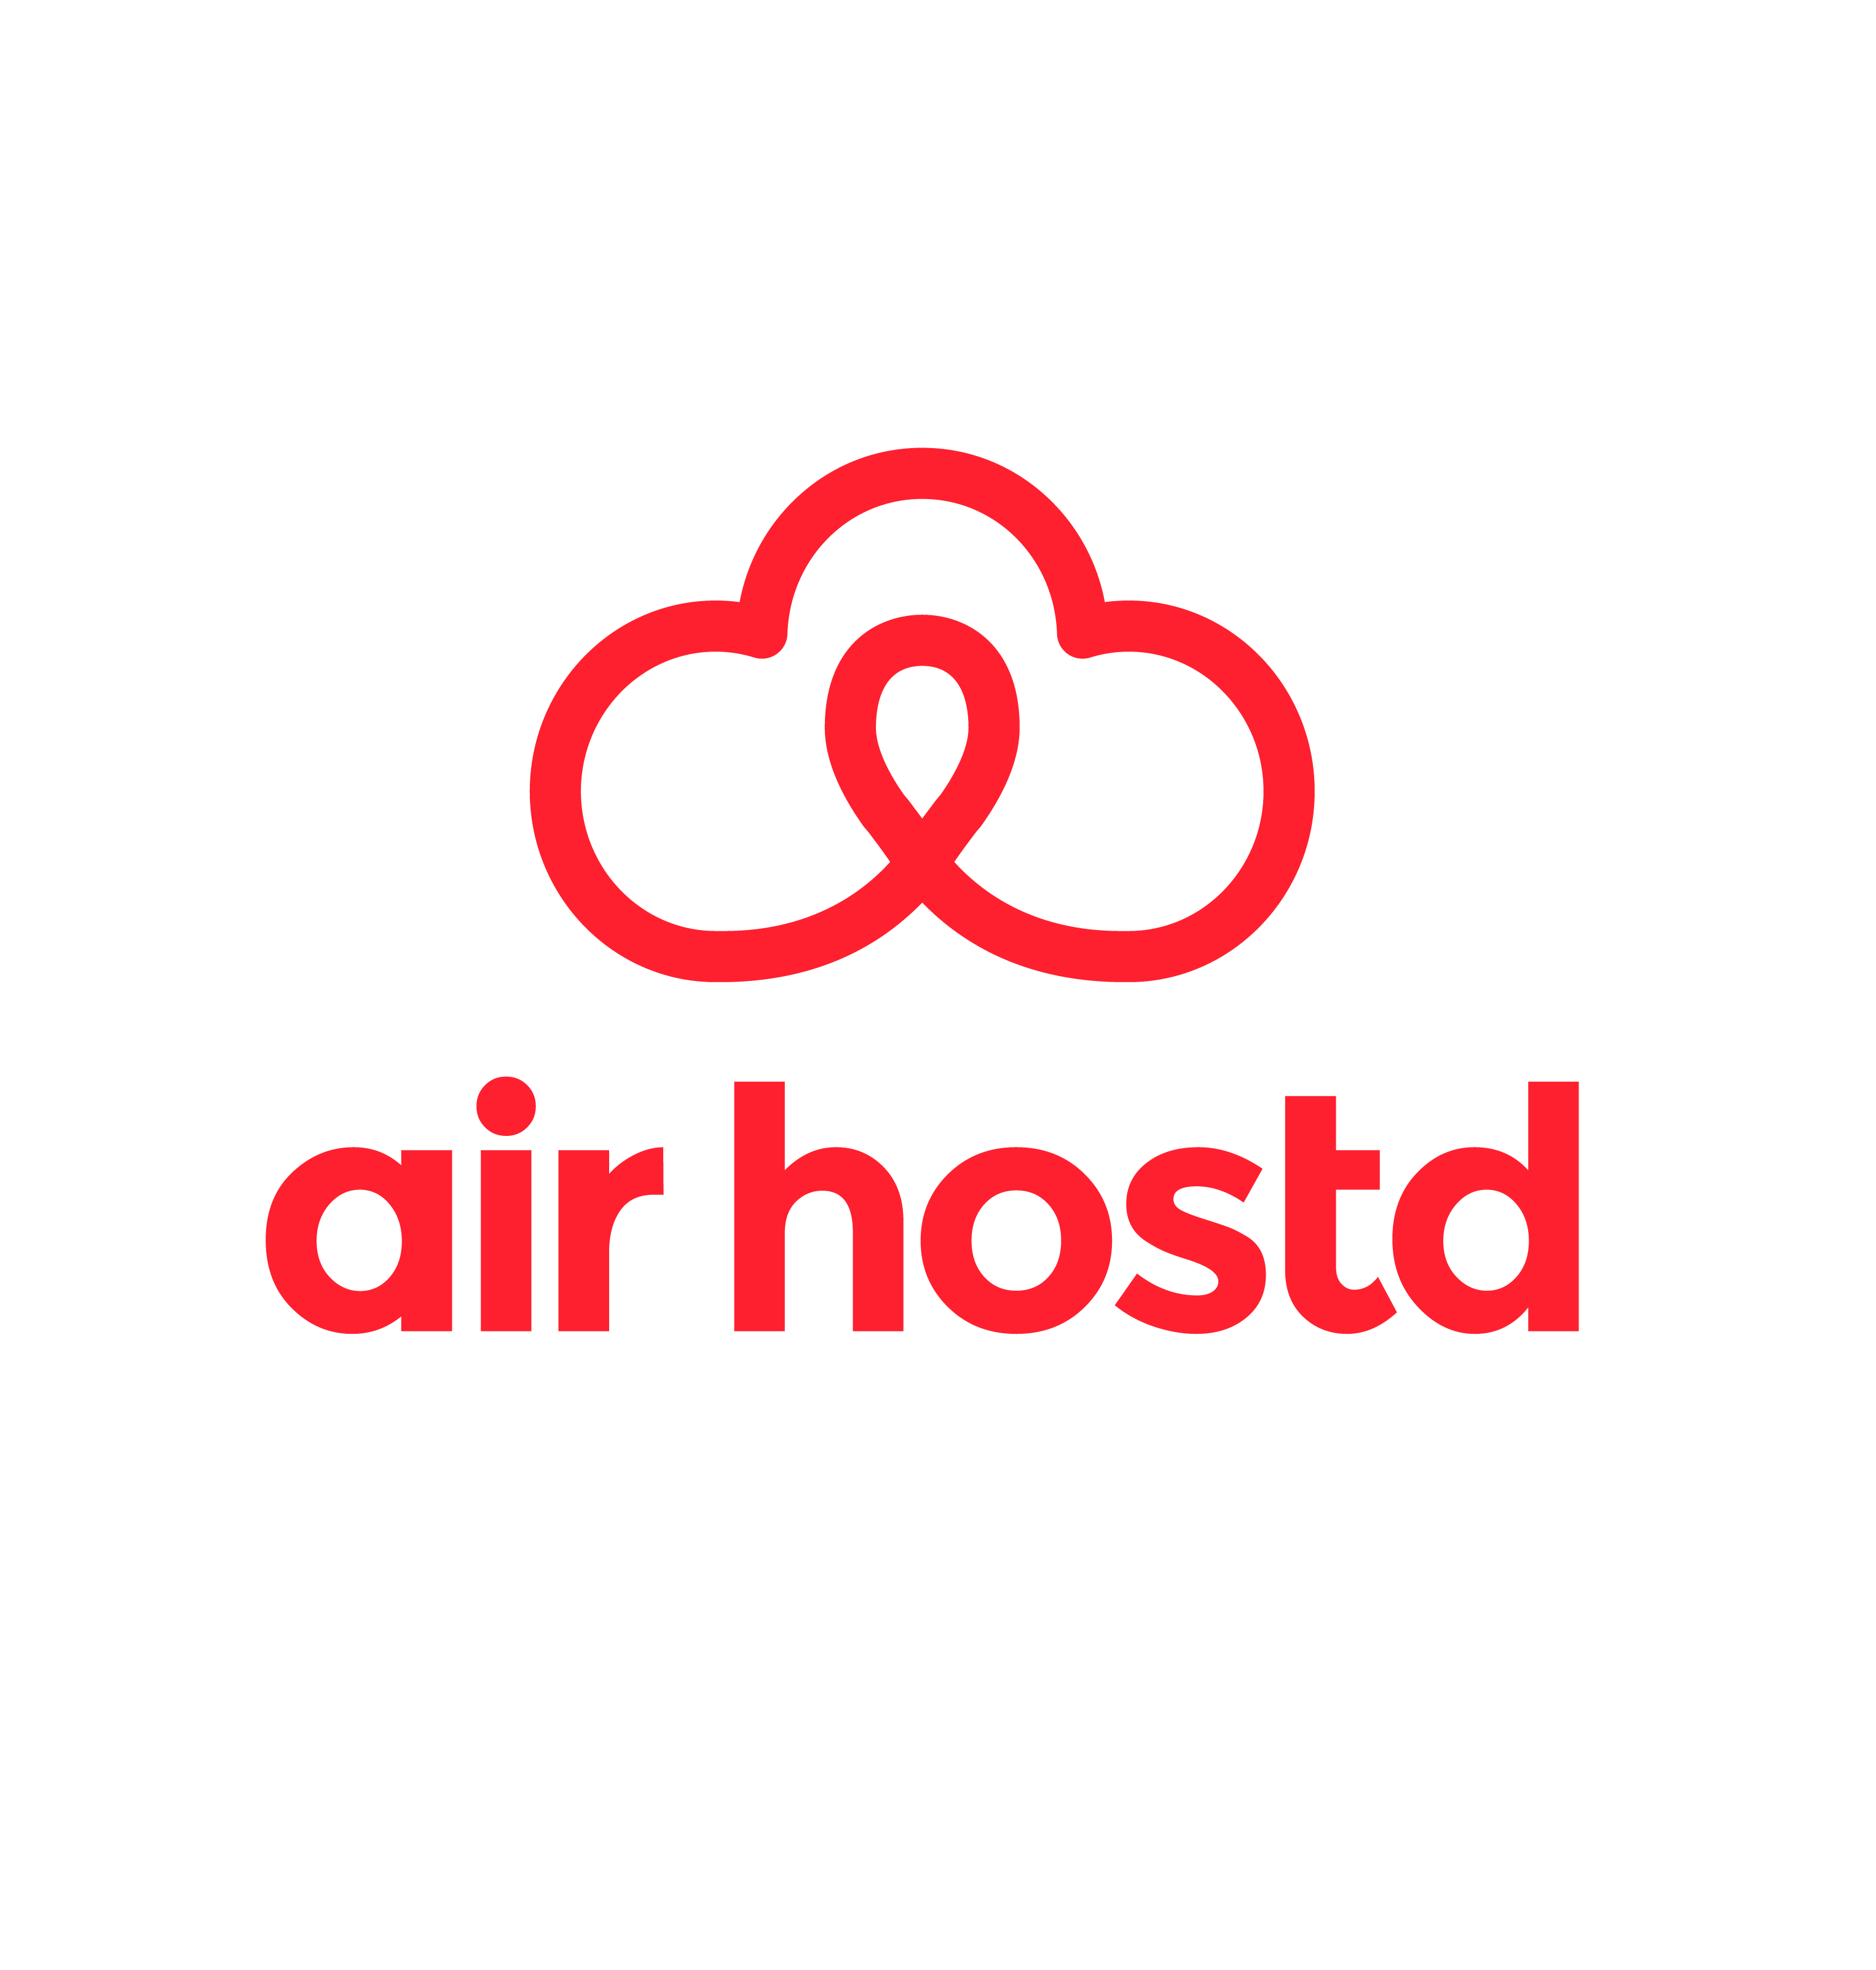 air hostd Offers Expert Airbnb Management Applying Strict COVID-19 Cleaning and Safety Protocols